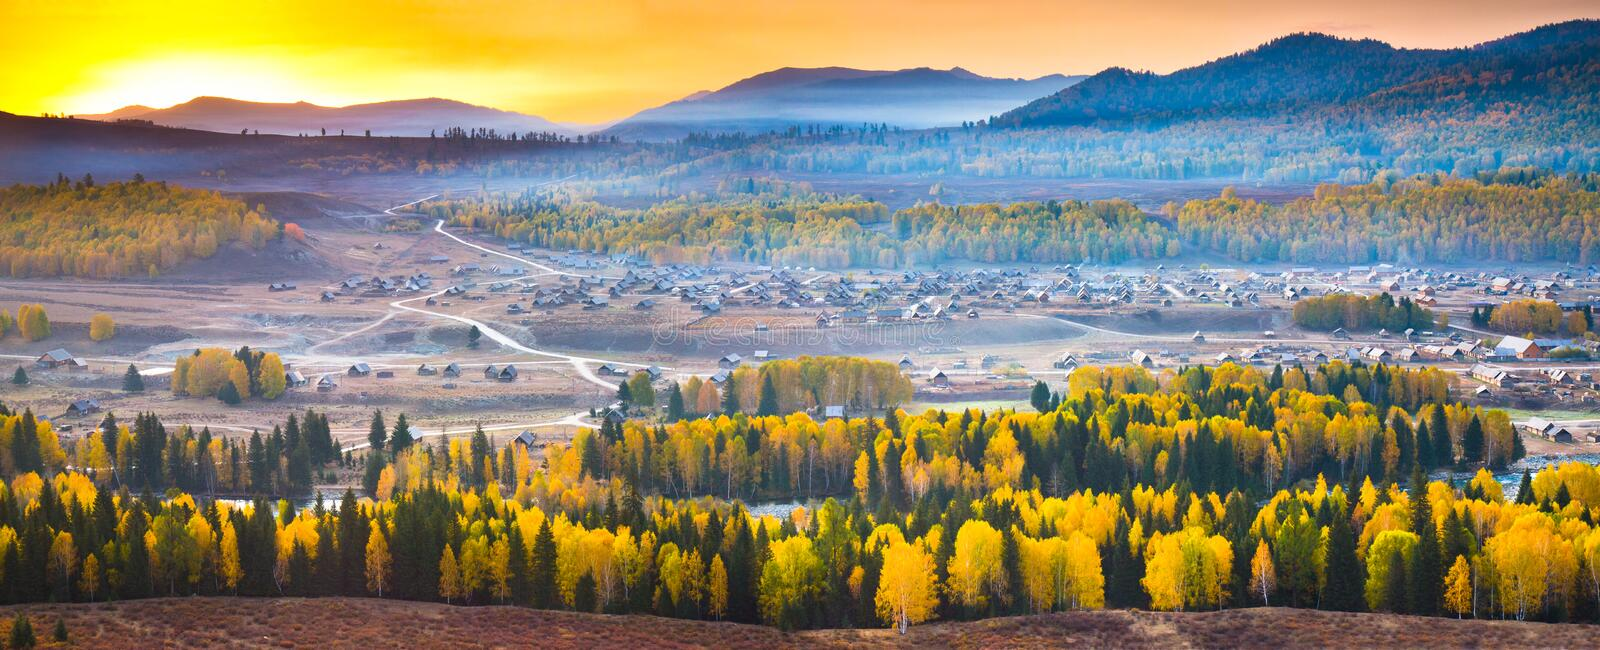 Sunrise Over Hemu Village, Xinjiang China Stock Images